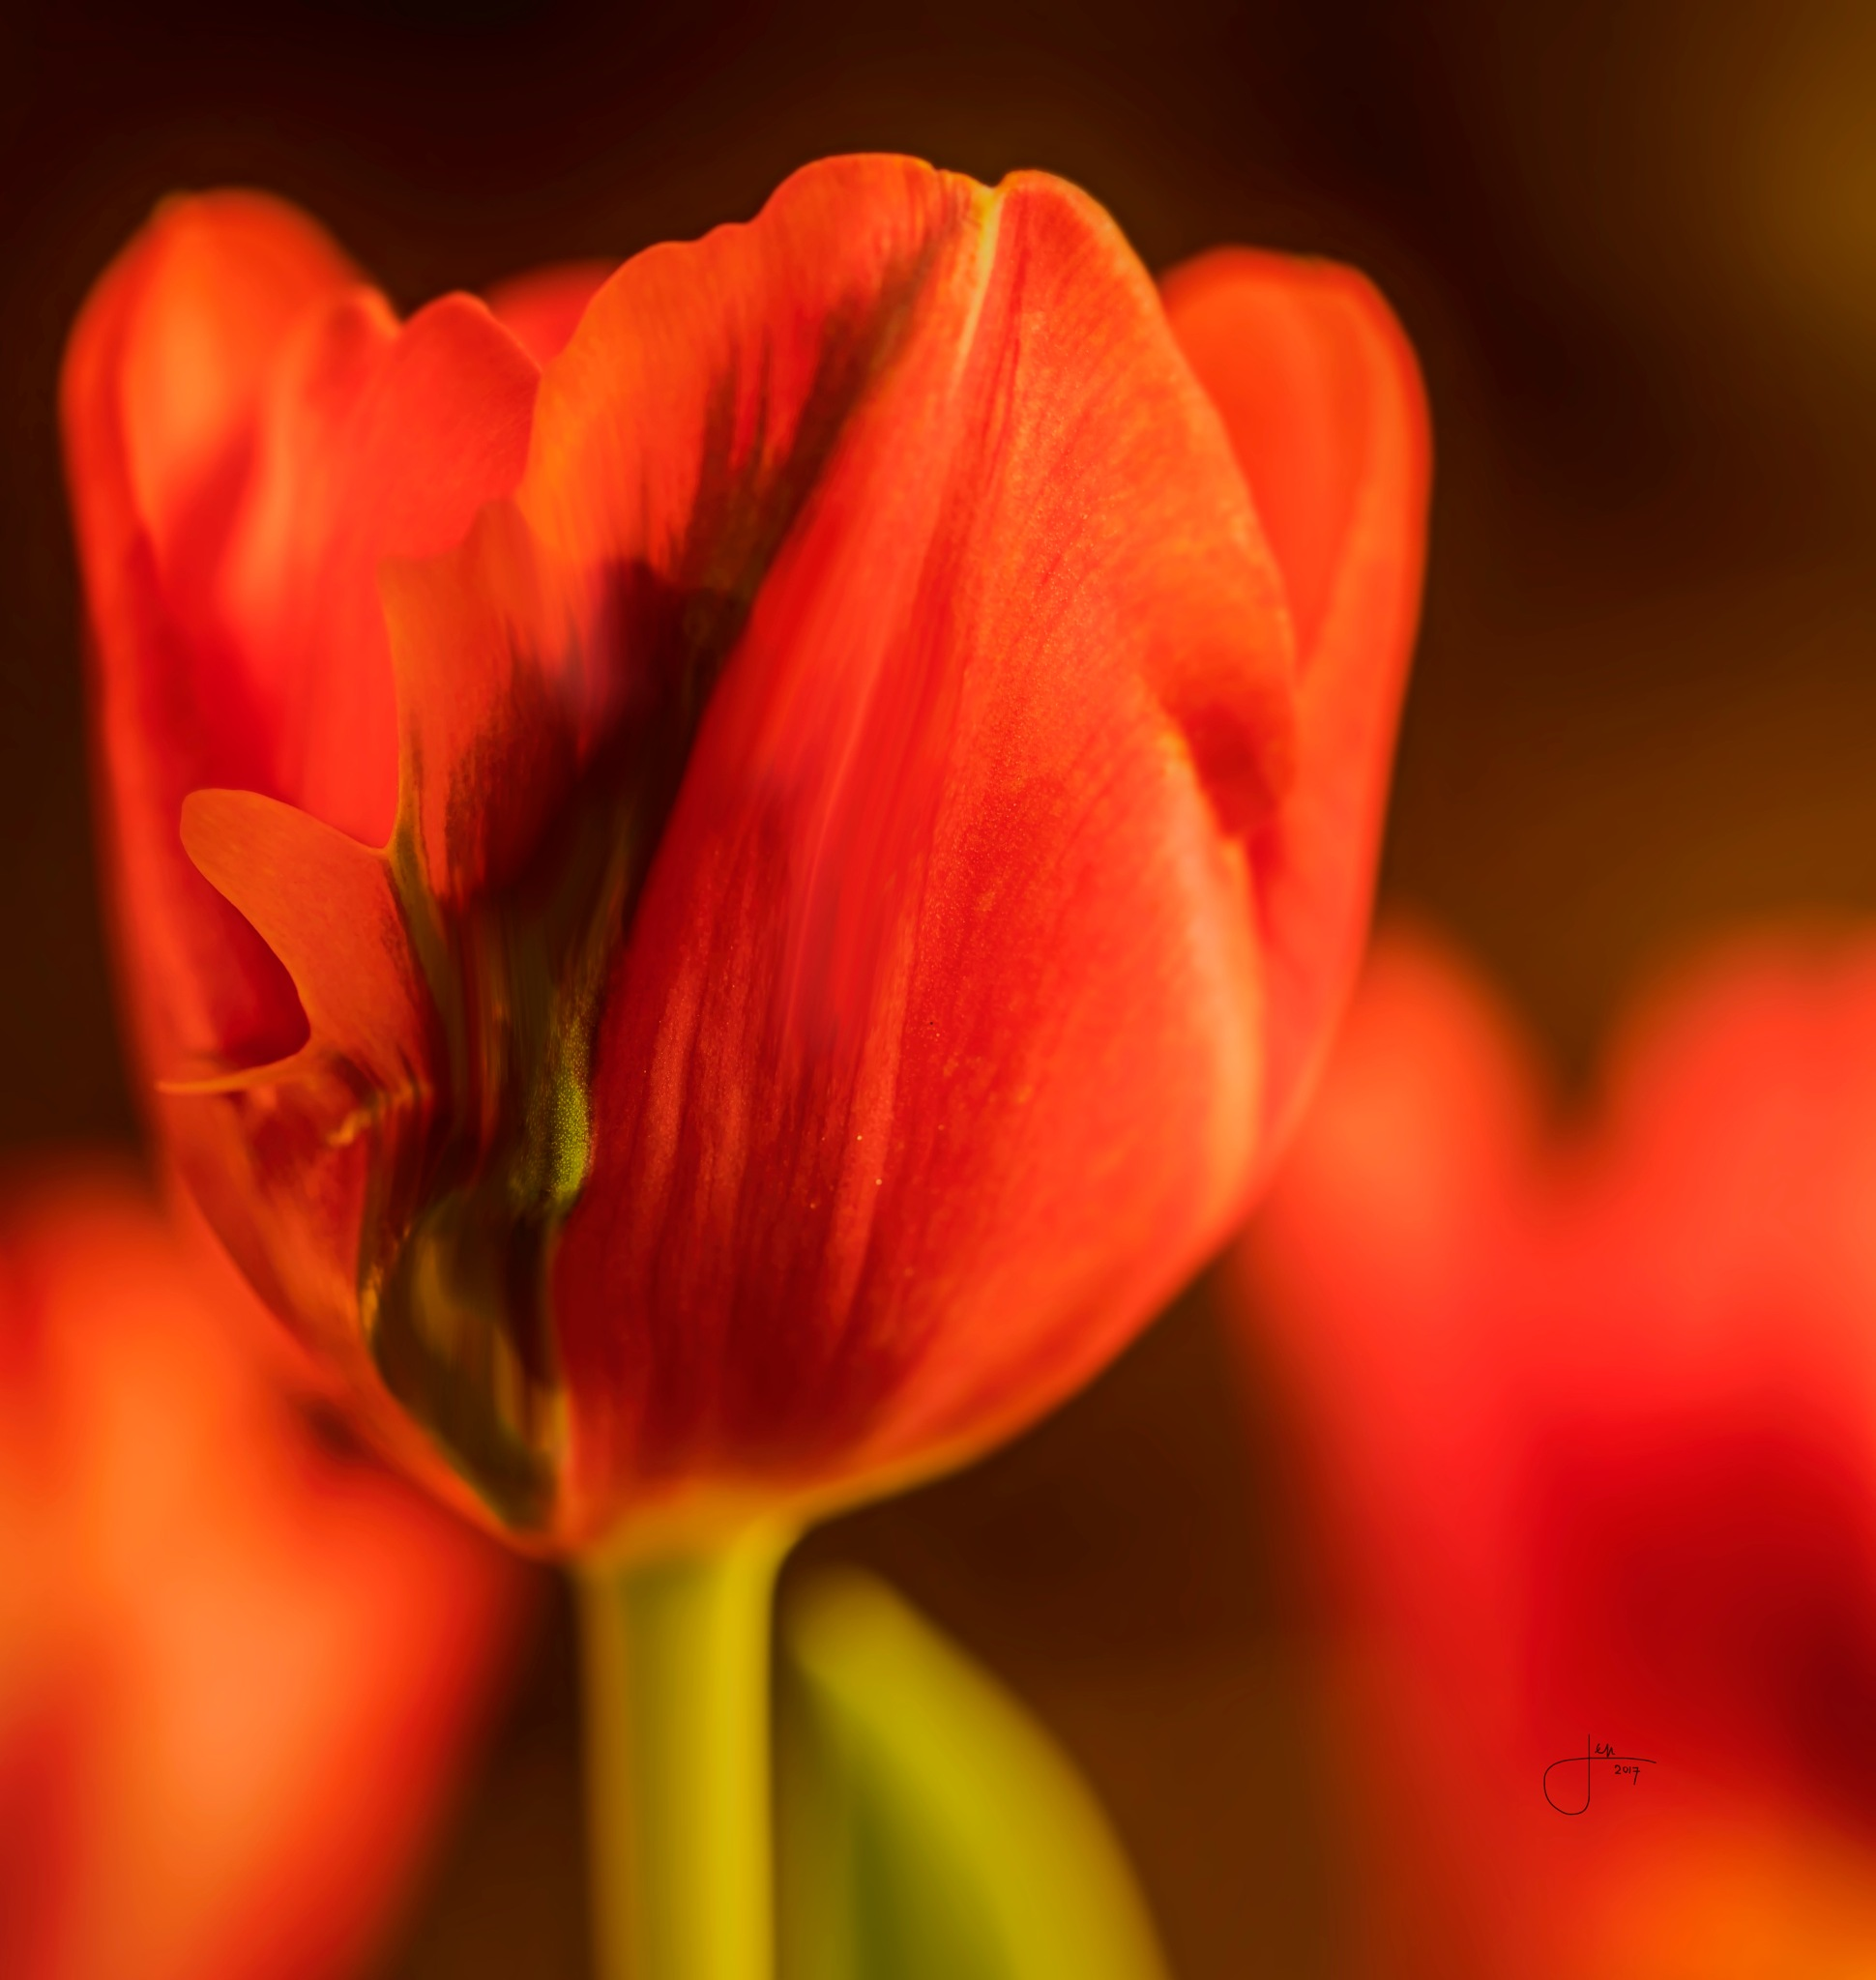 Tulips in Summer by Jennie